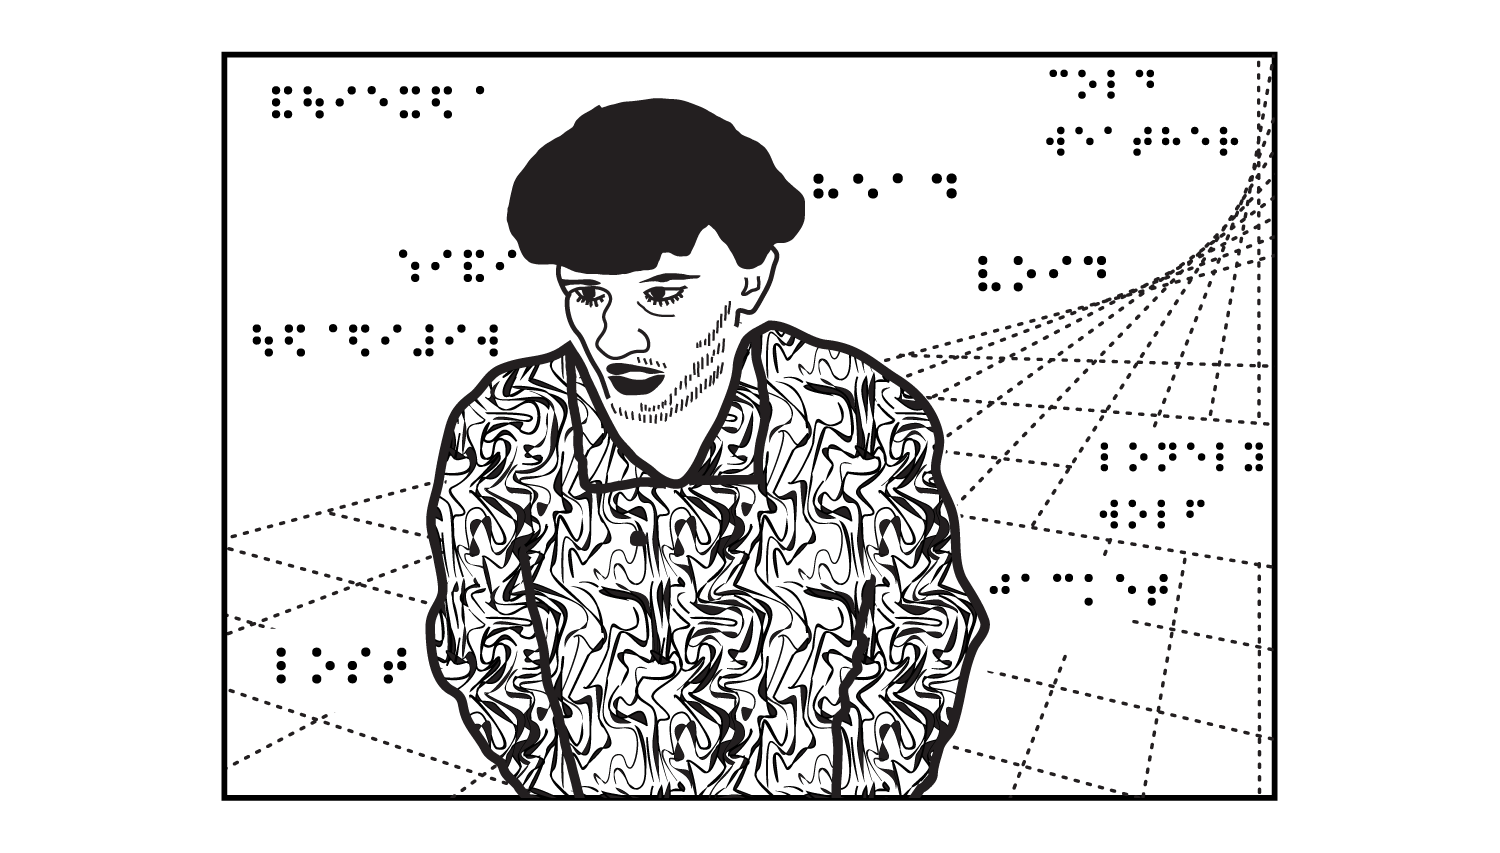 tactile8-01.png